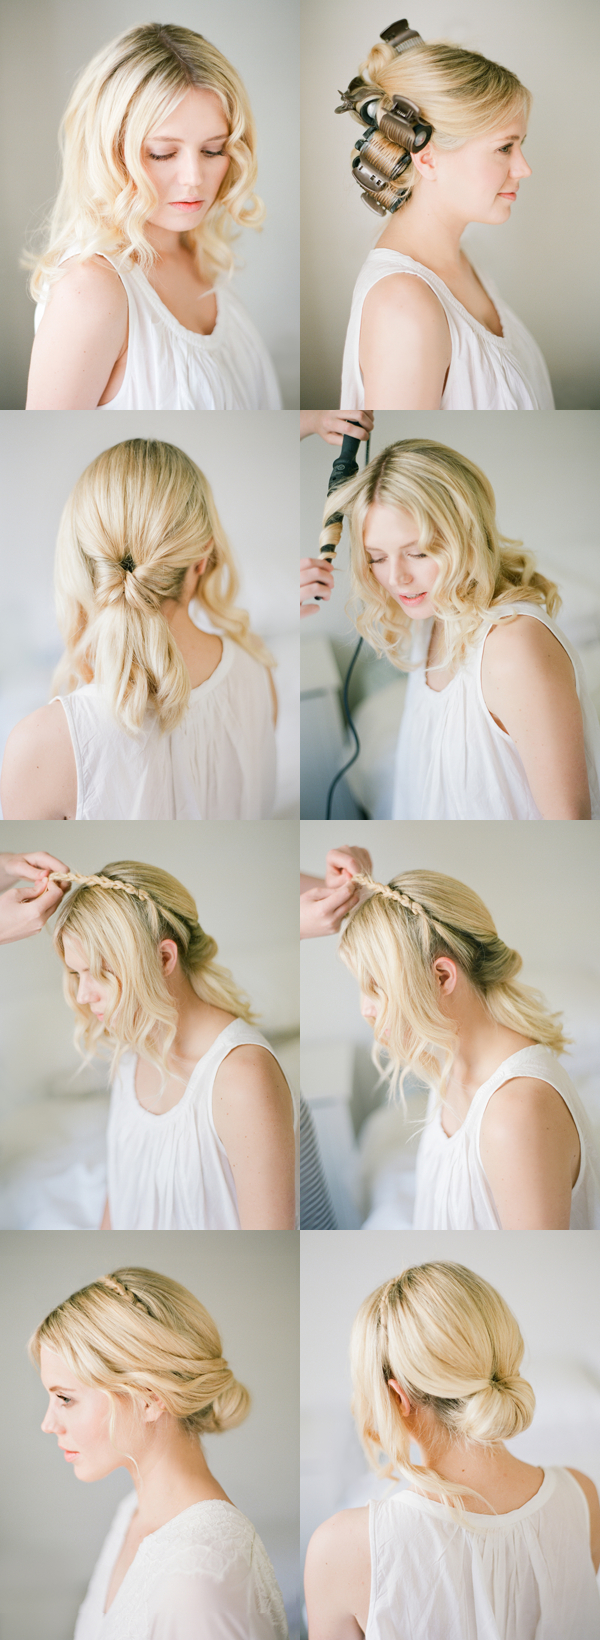 Well Liked Twisted Low Bun Hairstyles For Wedding With Diy Low Twisted Bun (View 20 of 20)